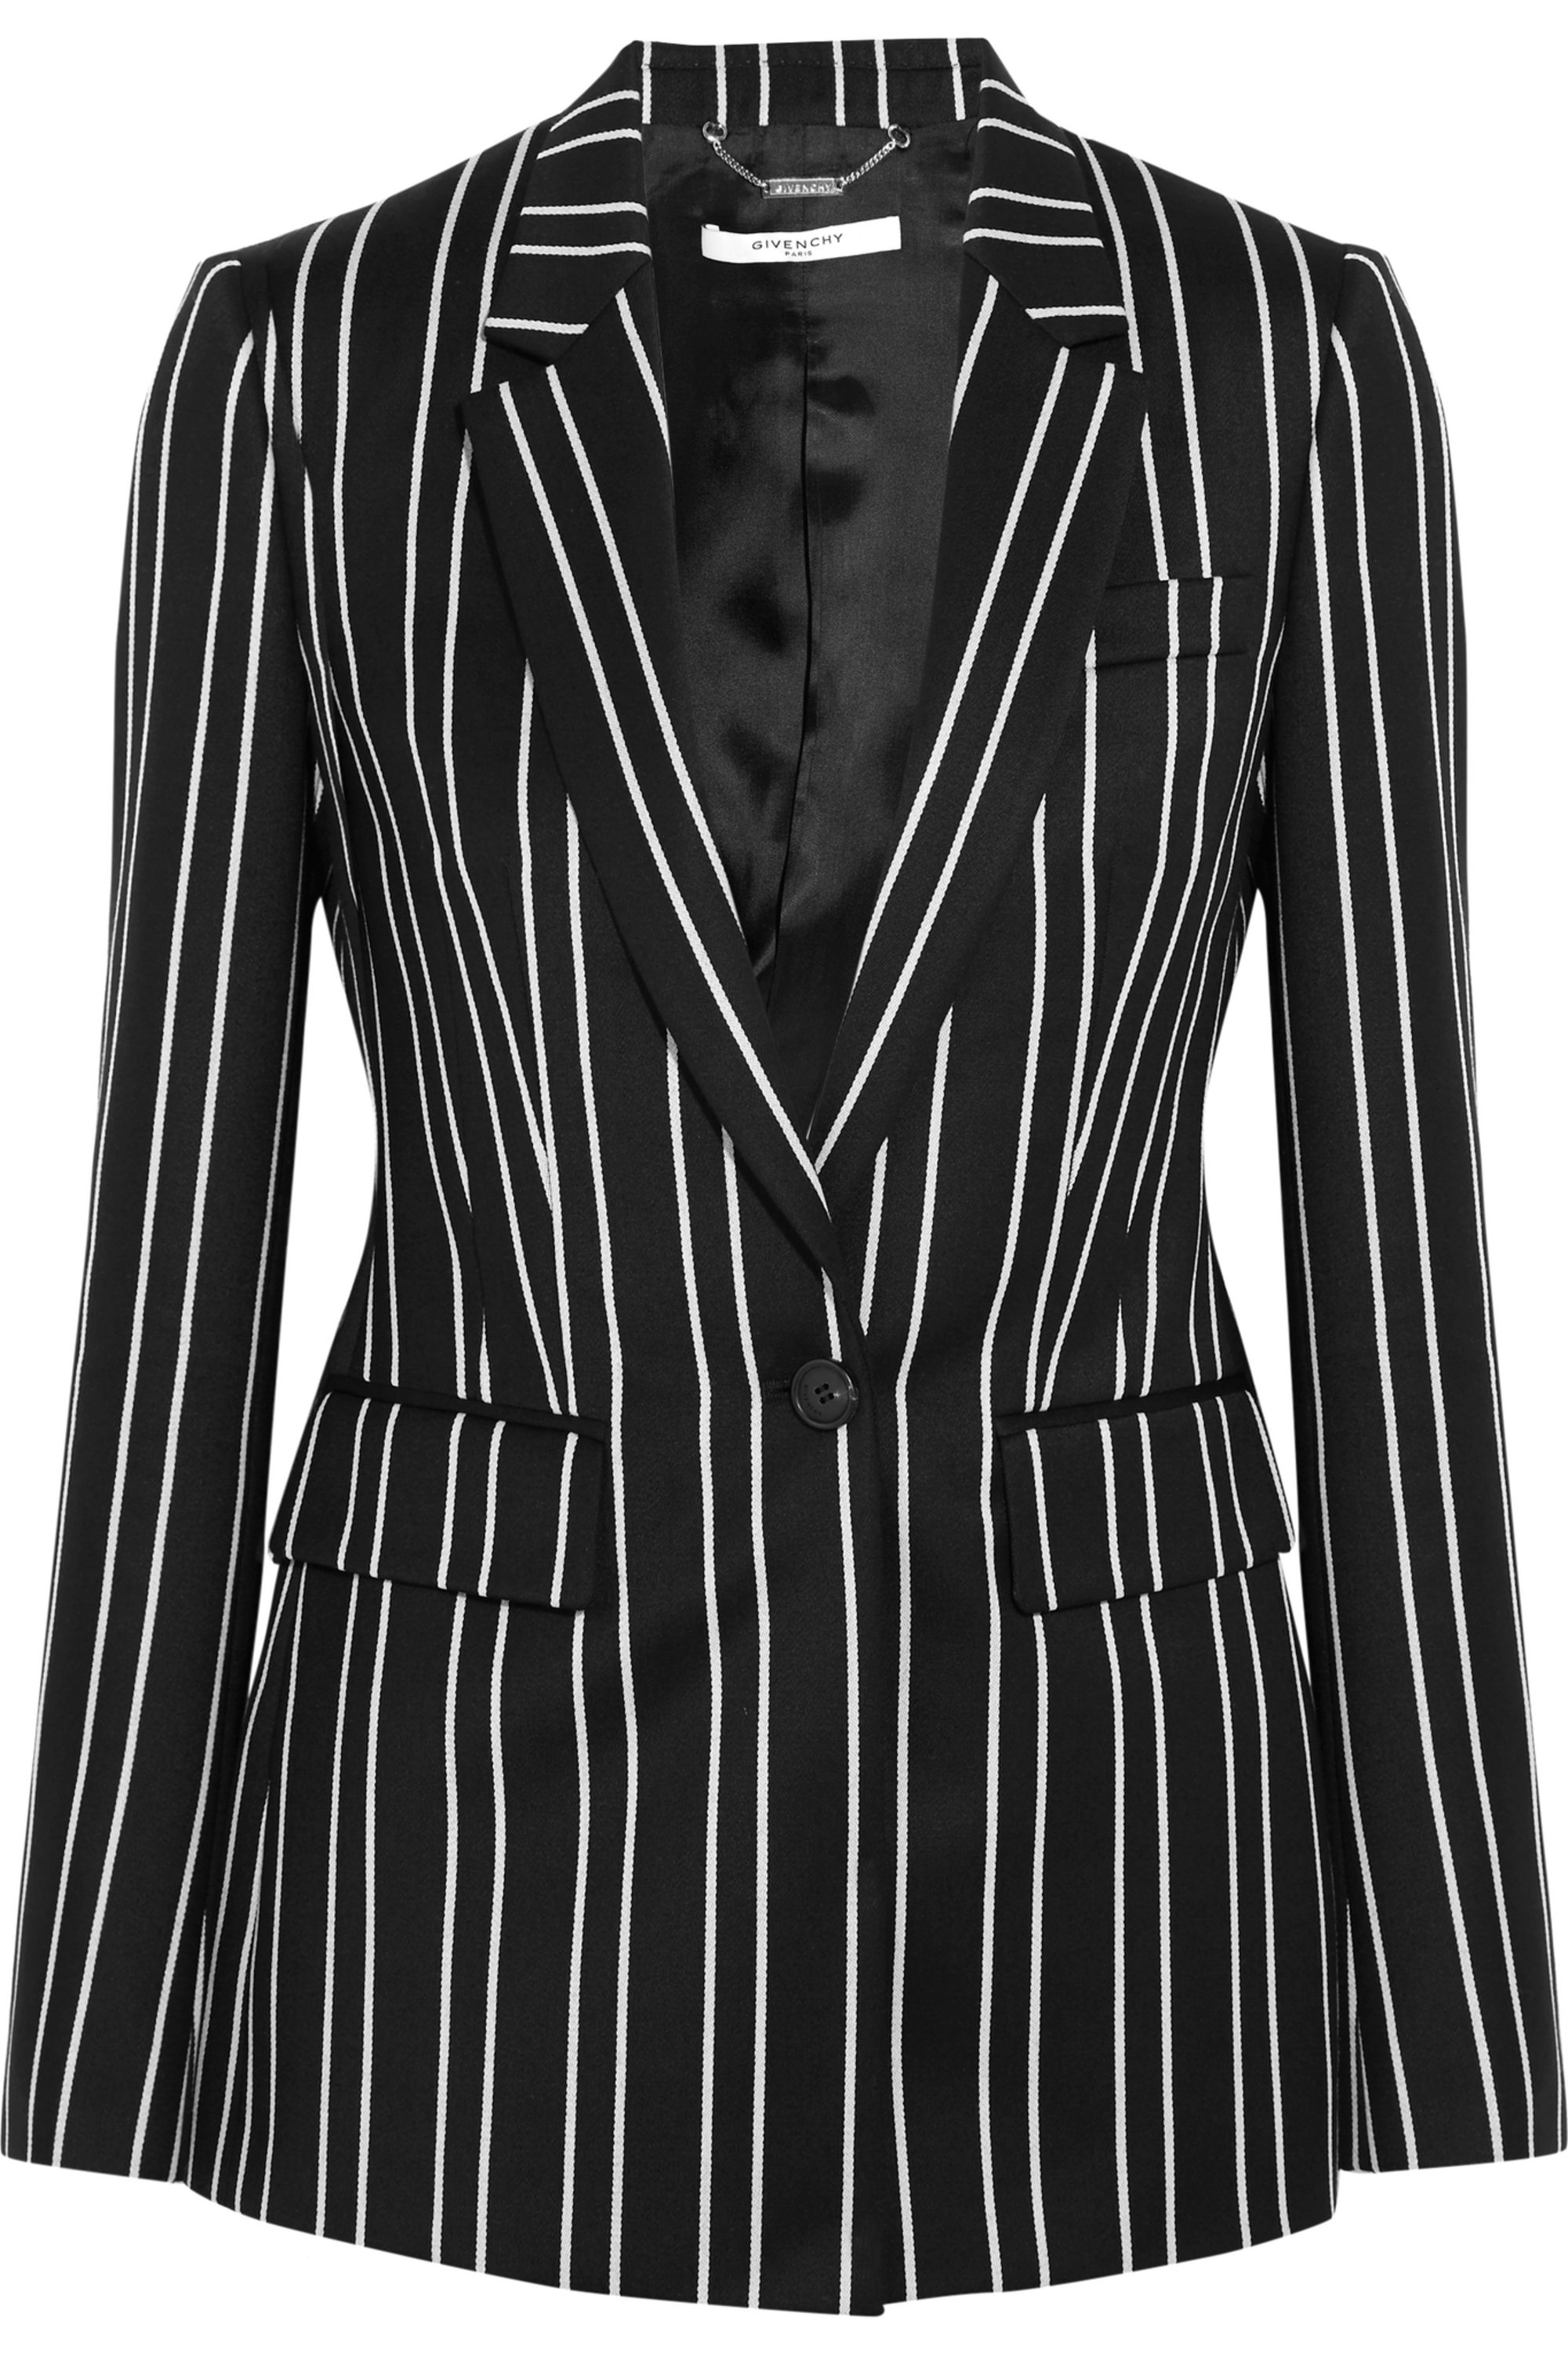 Givenchy Blazer in black and white striped wool-jacquard